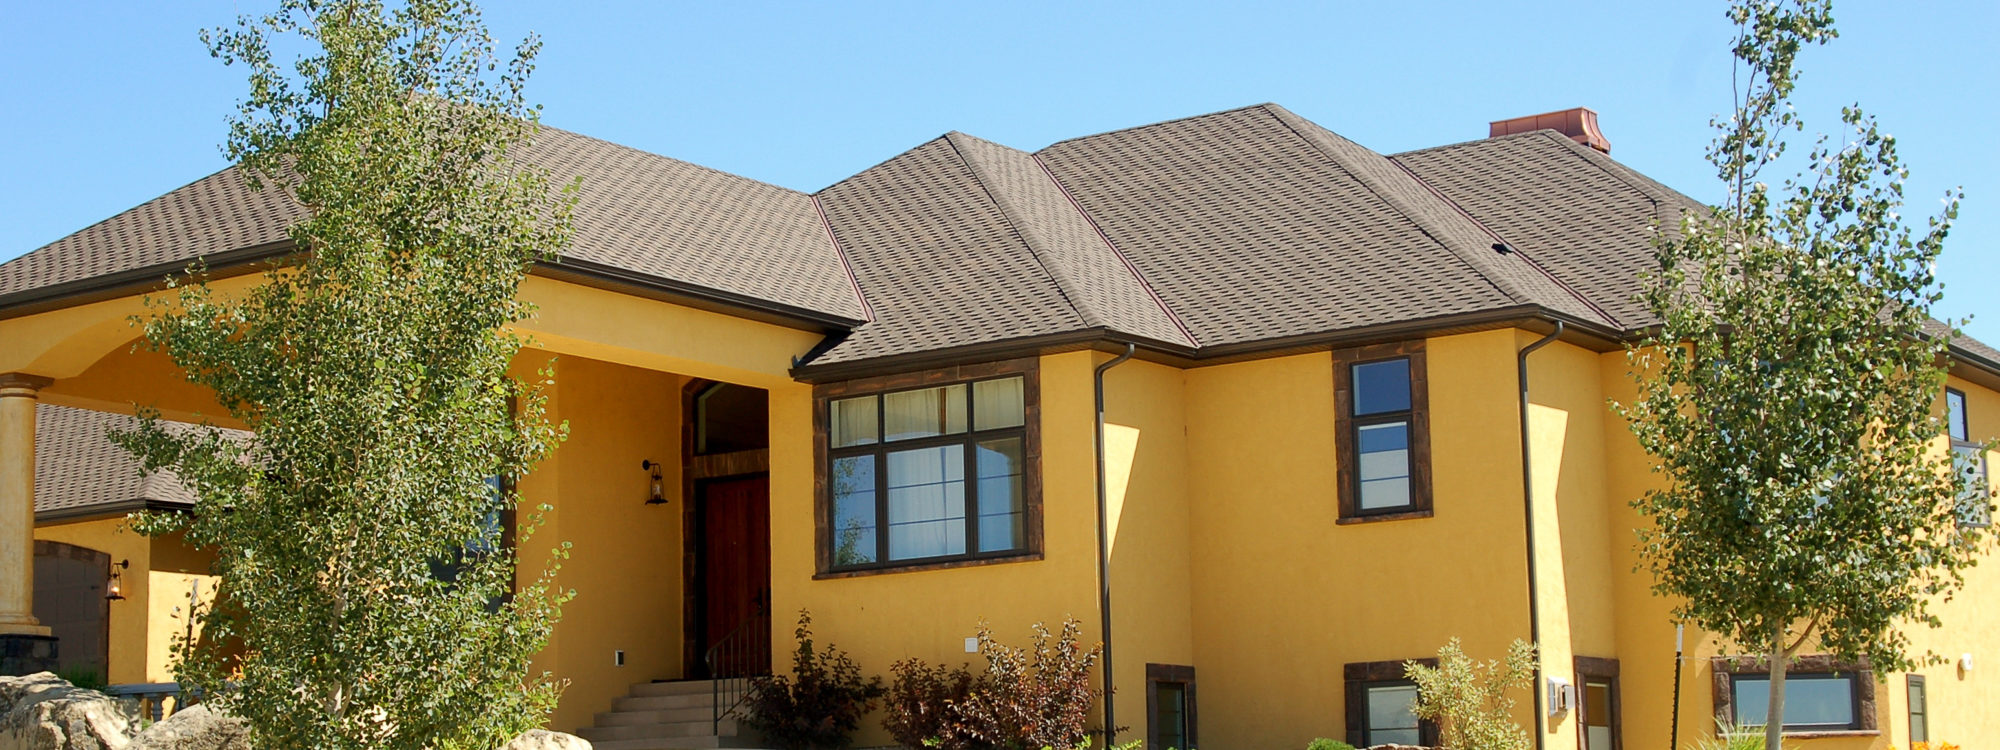 Montana wall finishes plaster dryvit stone texteriors - Exterior wall finishes for homes ...